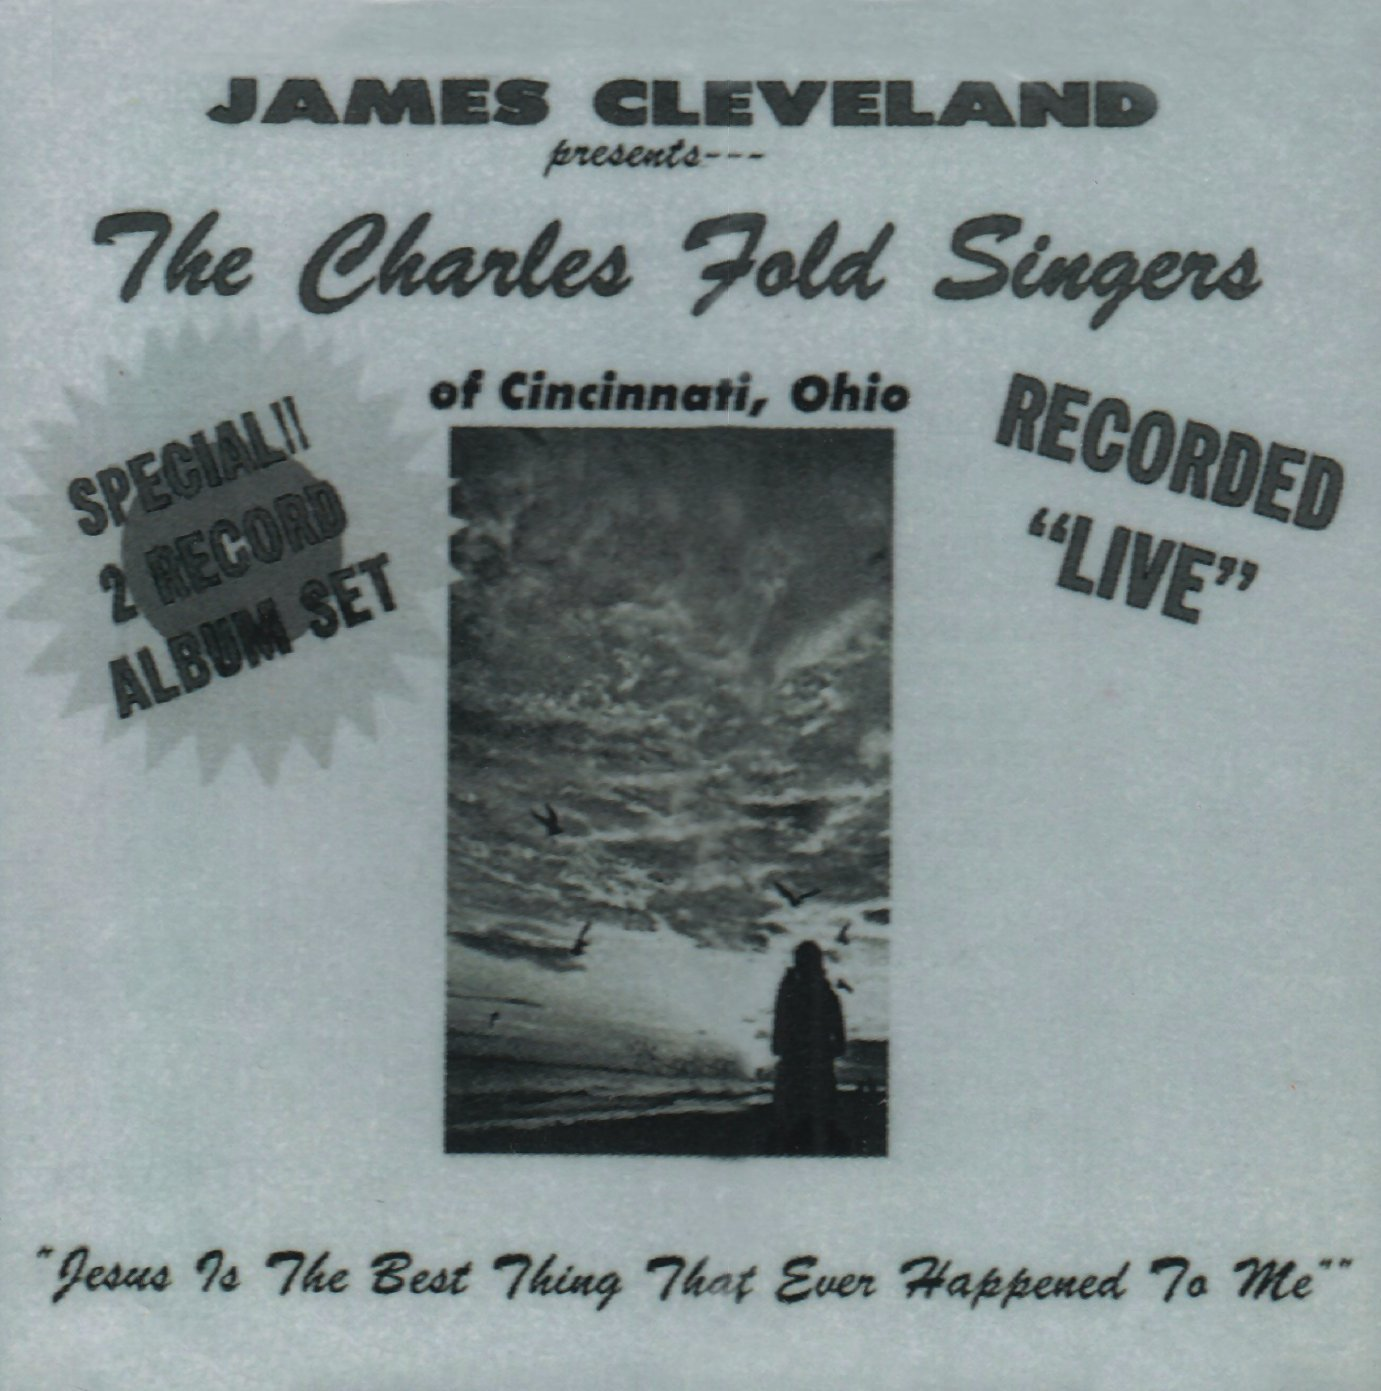 The Charles Fold Singers: Jesus Is the Best Thing That Ever Happened to Me